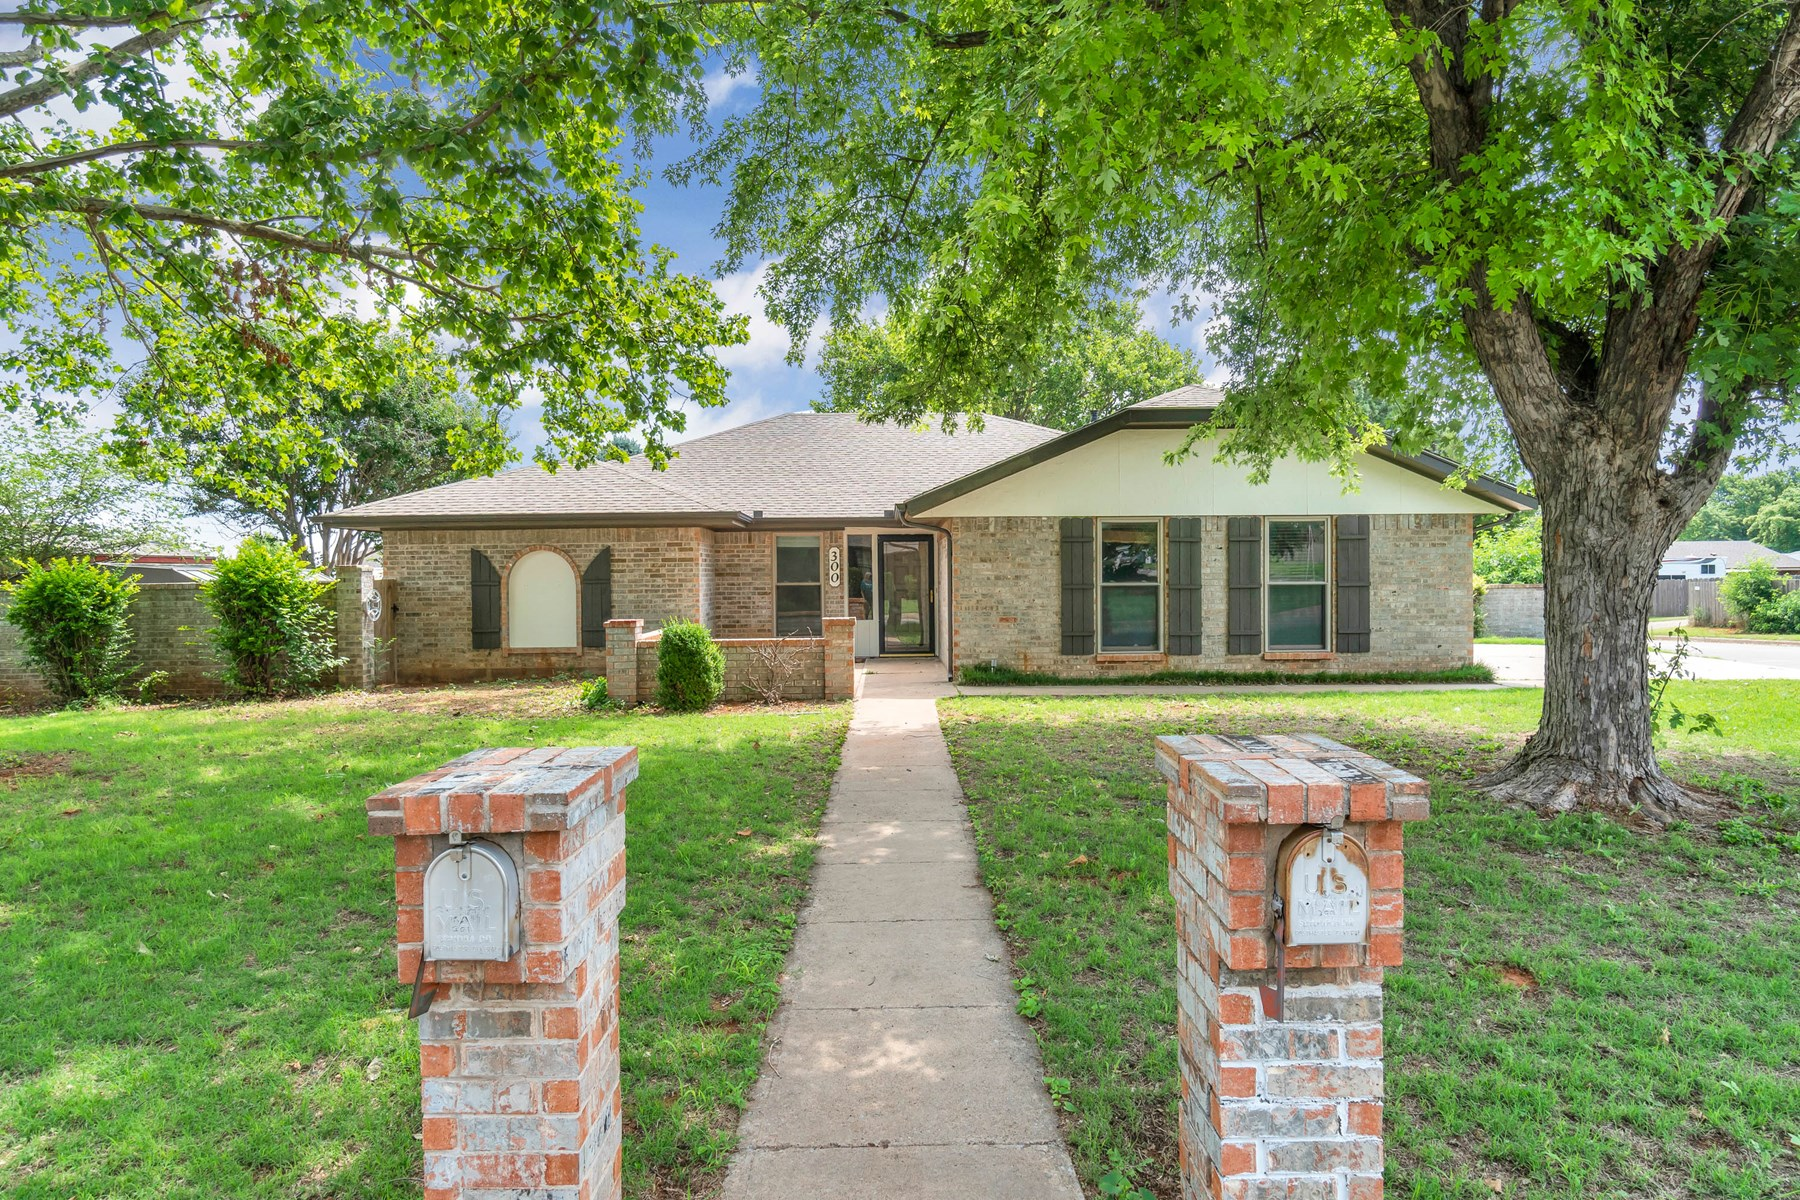 REMODELED HOME FOR SALE WESTERN OKLAHOMA  STORM SHELTER